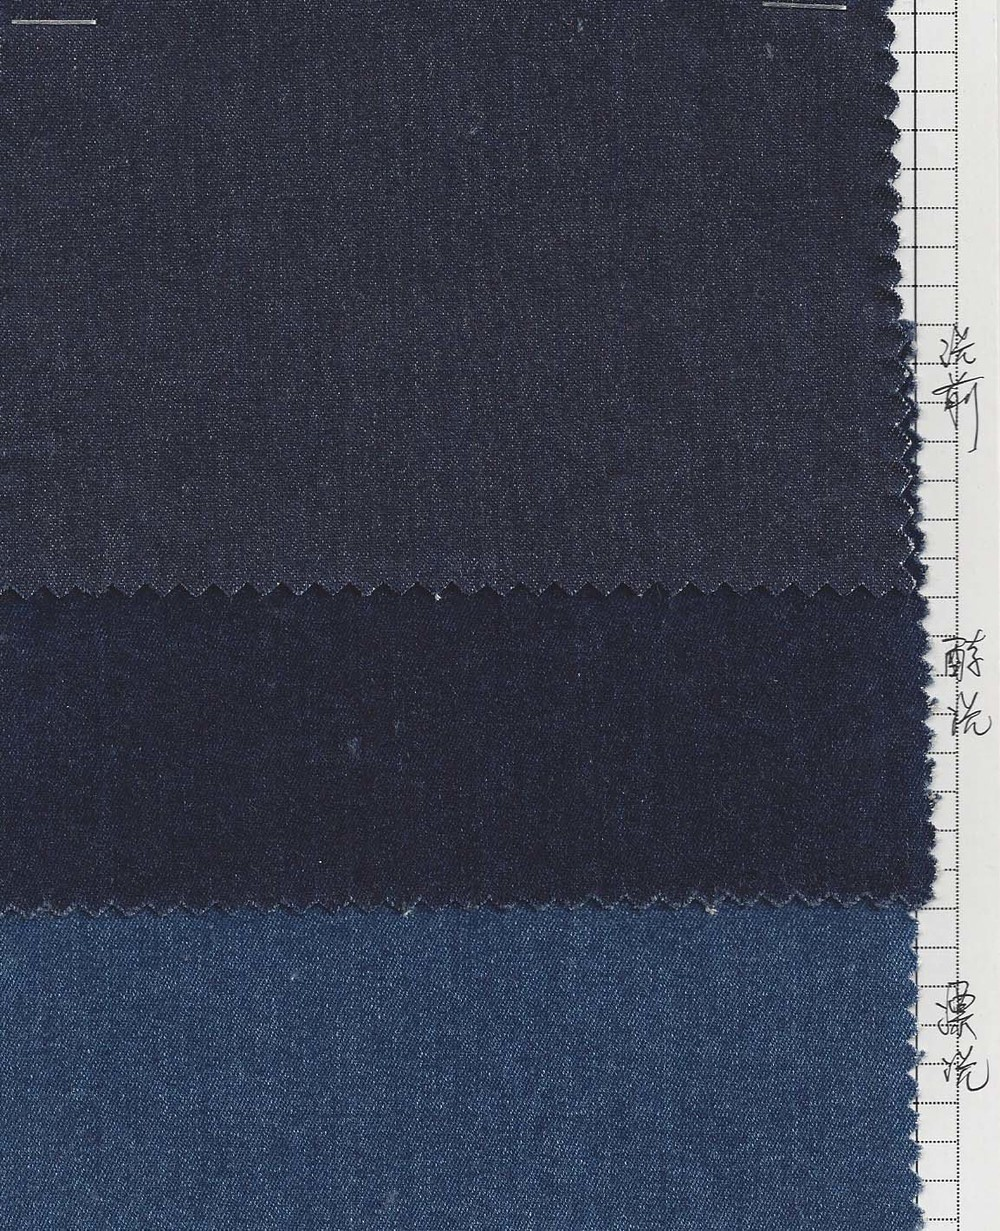 Real Famous Textile 9056.jpg